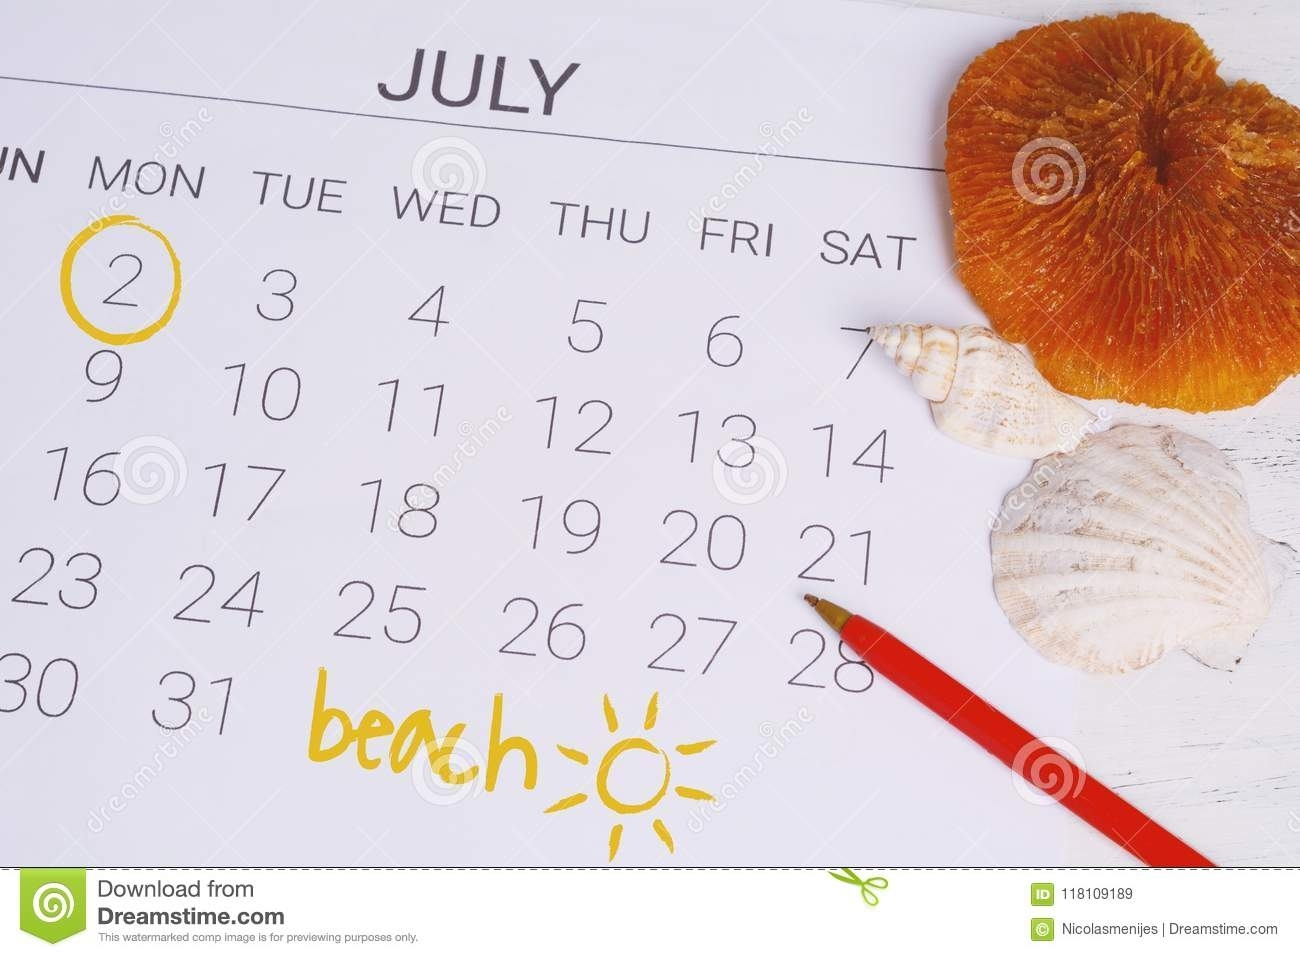 Summer Calendar Schedule. Stock Image. Image Of Birthday - 118109189 regarding Summer Picture For Birthday Calendars